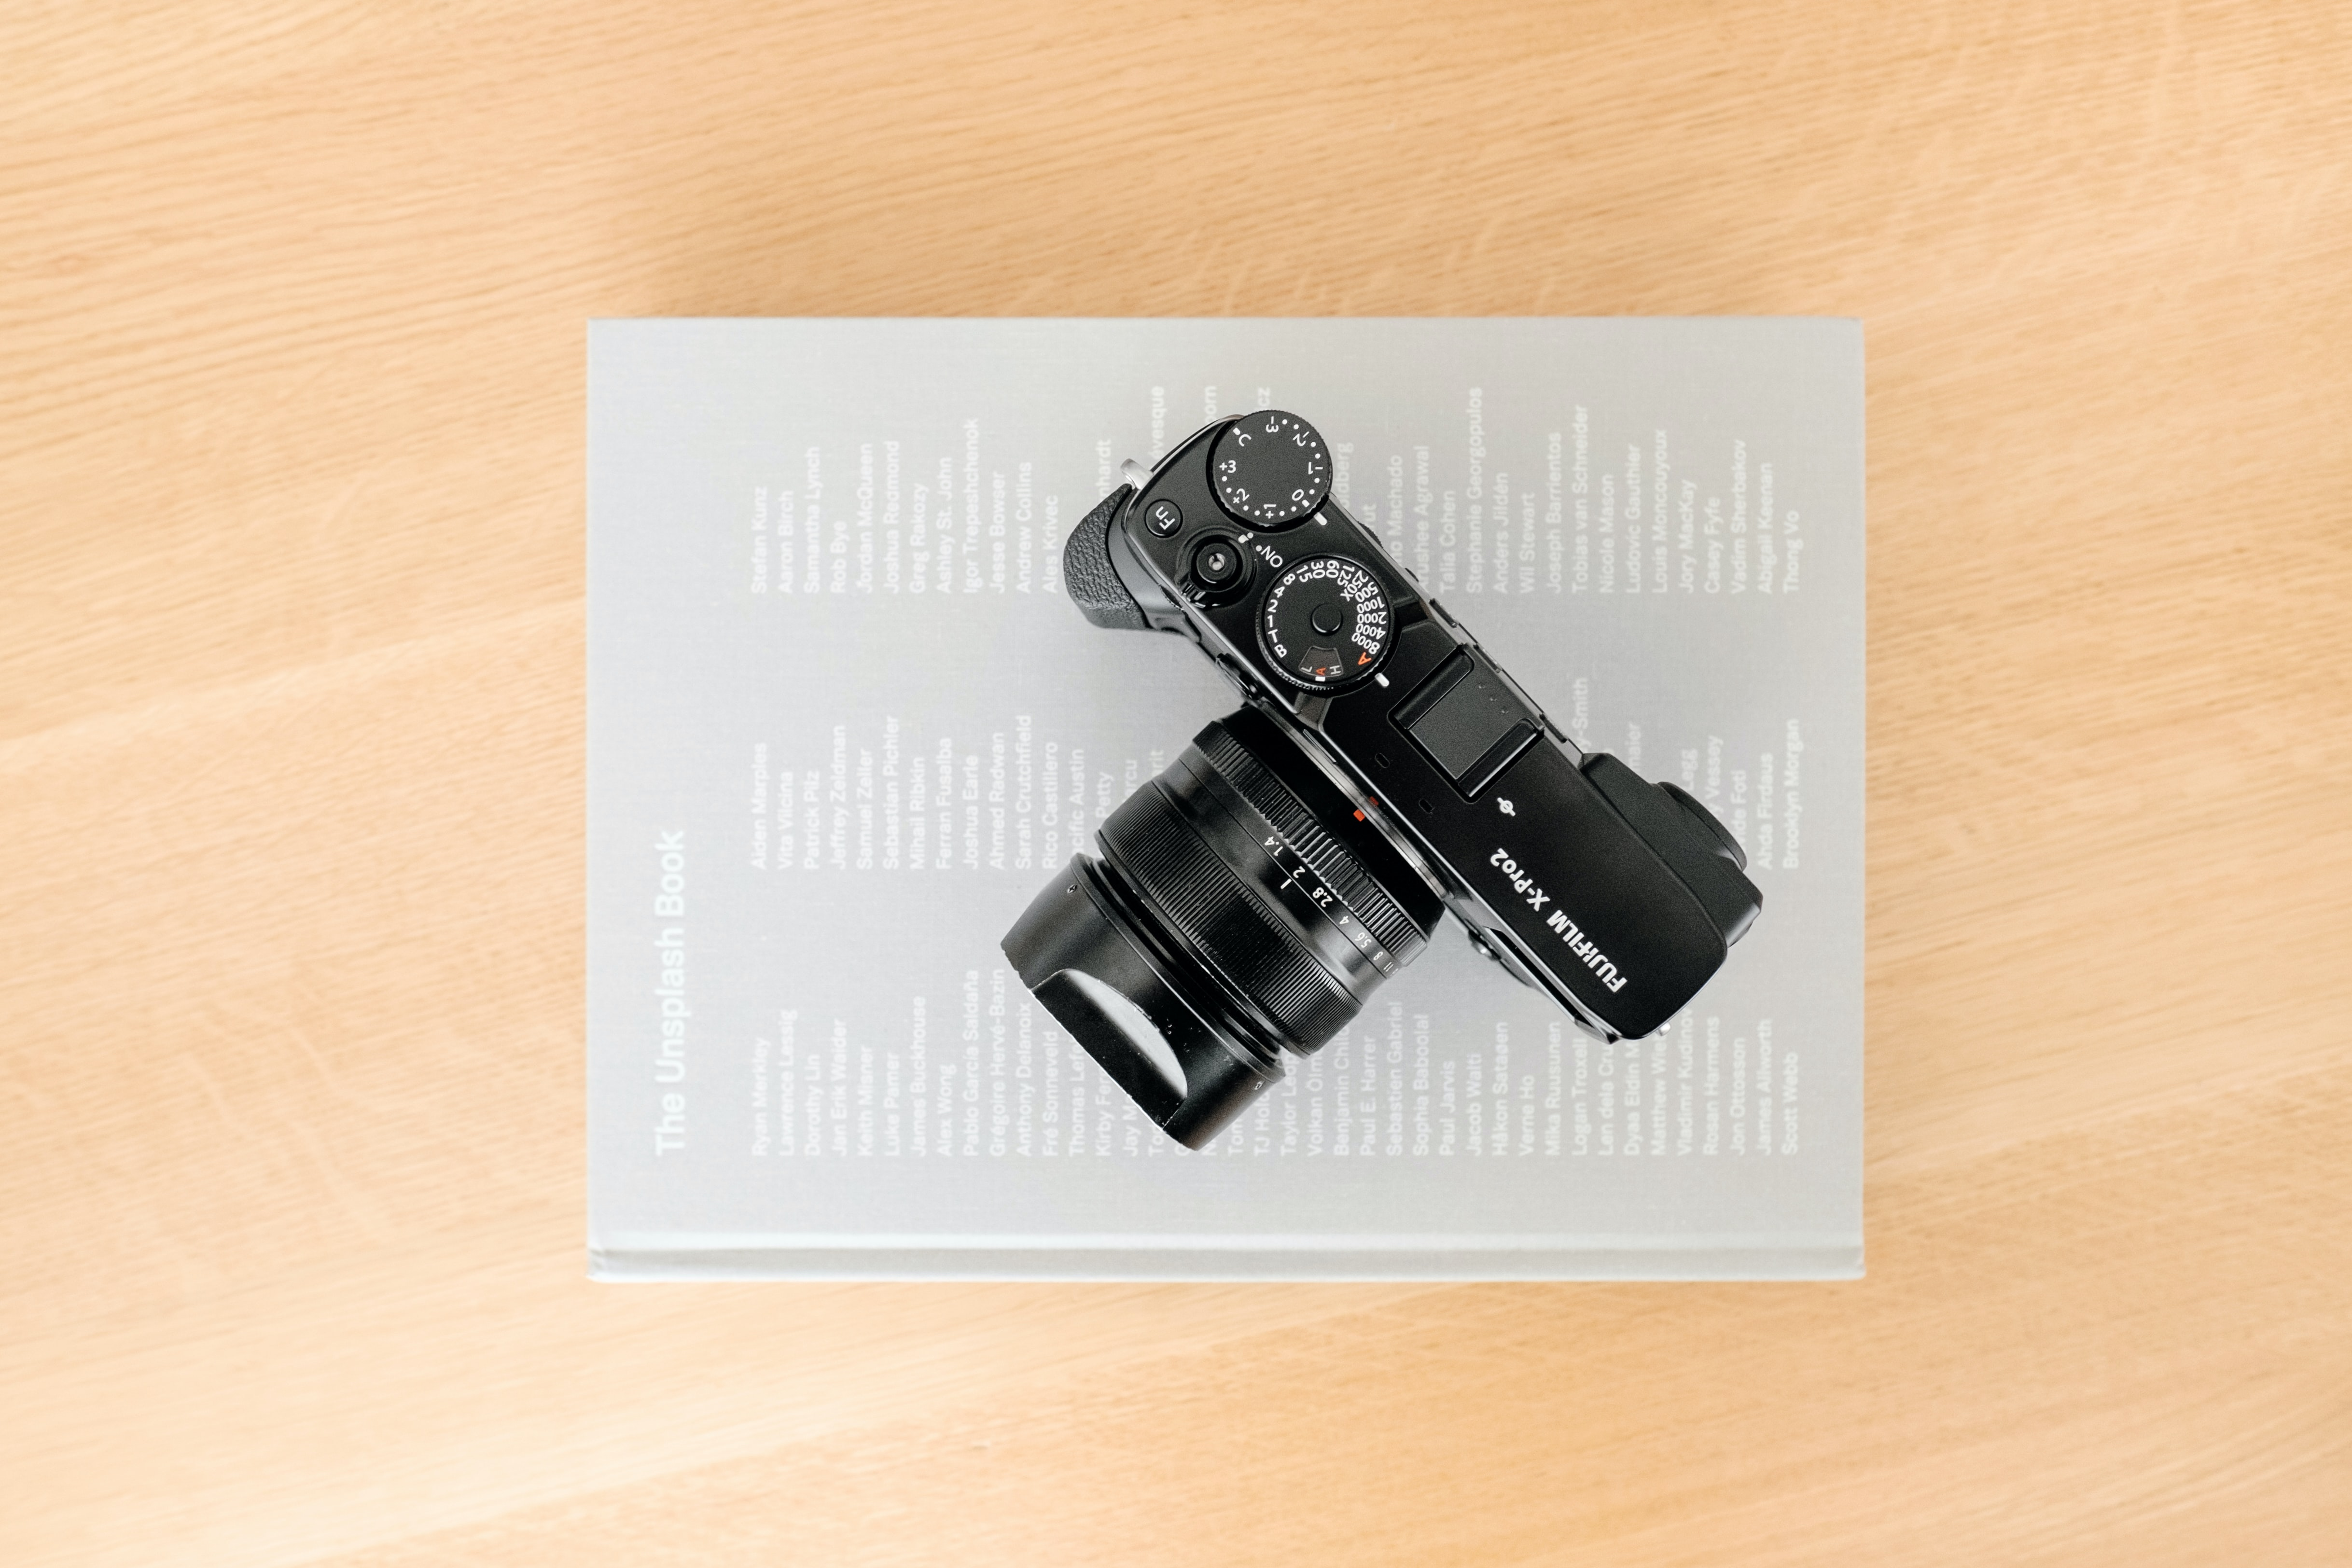 Fujifilm camera on gray book on a desk